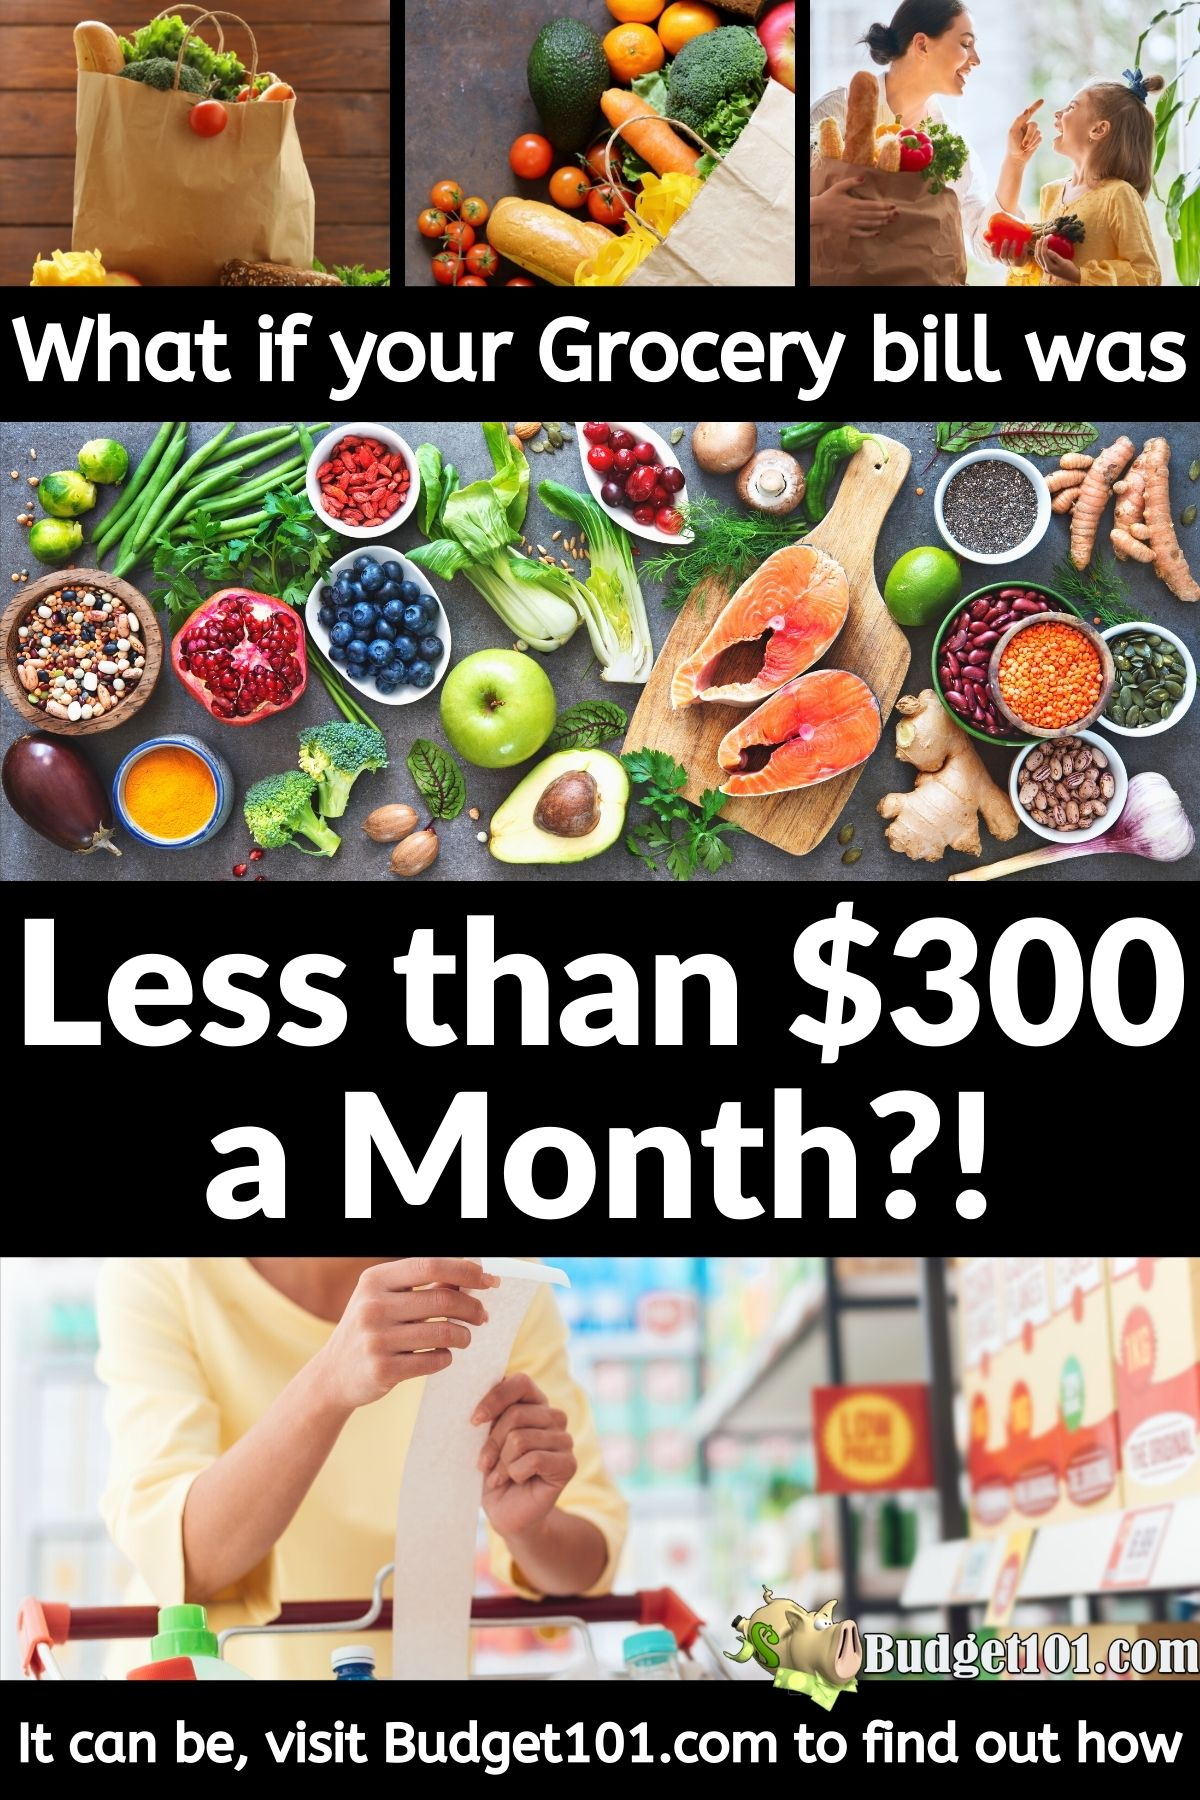 The Complete Budget101 Guide to Groceries under $300 a Month- Free #Budget101 #DirtCheap #GroceryGuide